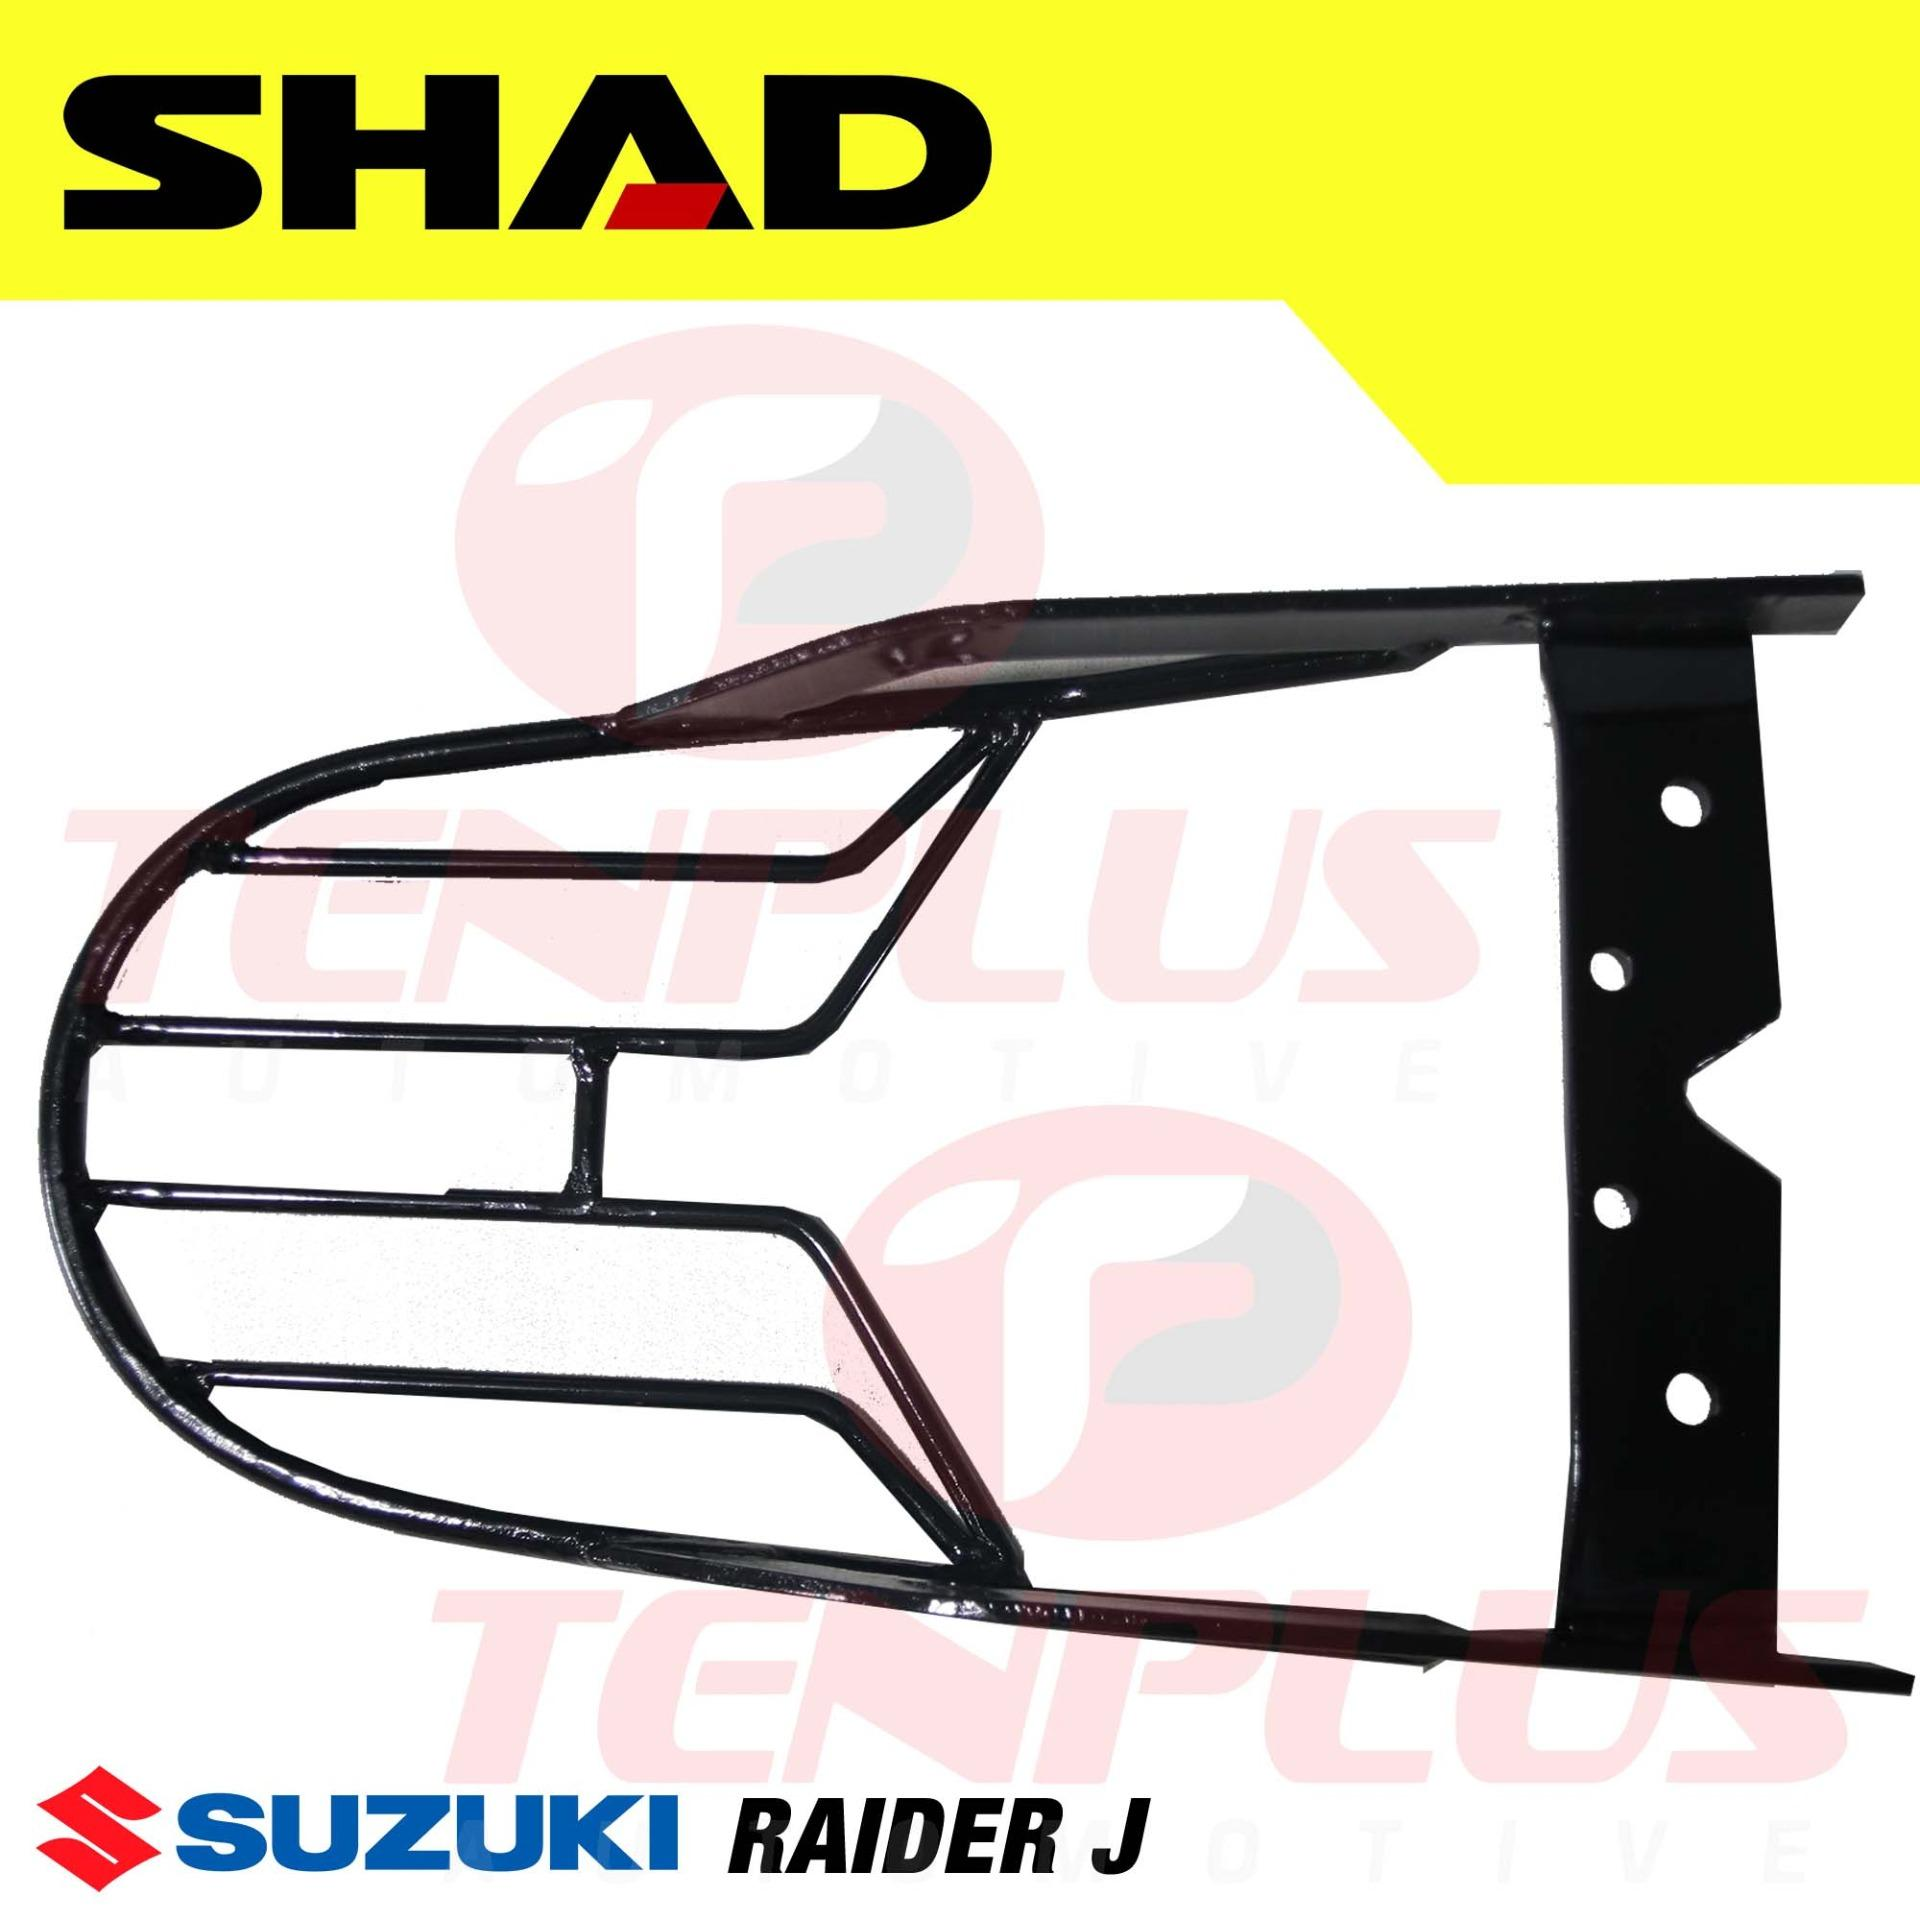 Shad Philippines: Shad price list - Motor Accessories for sale | Lazada